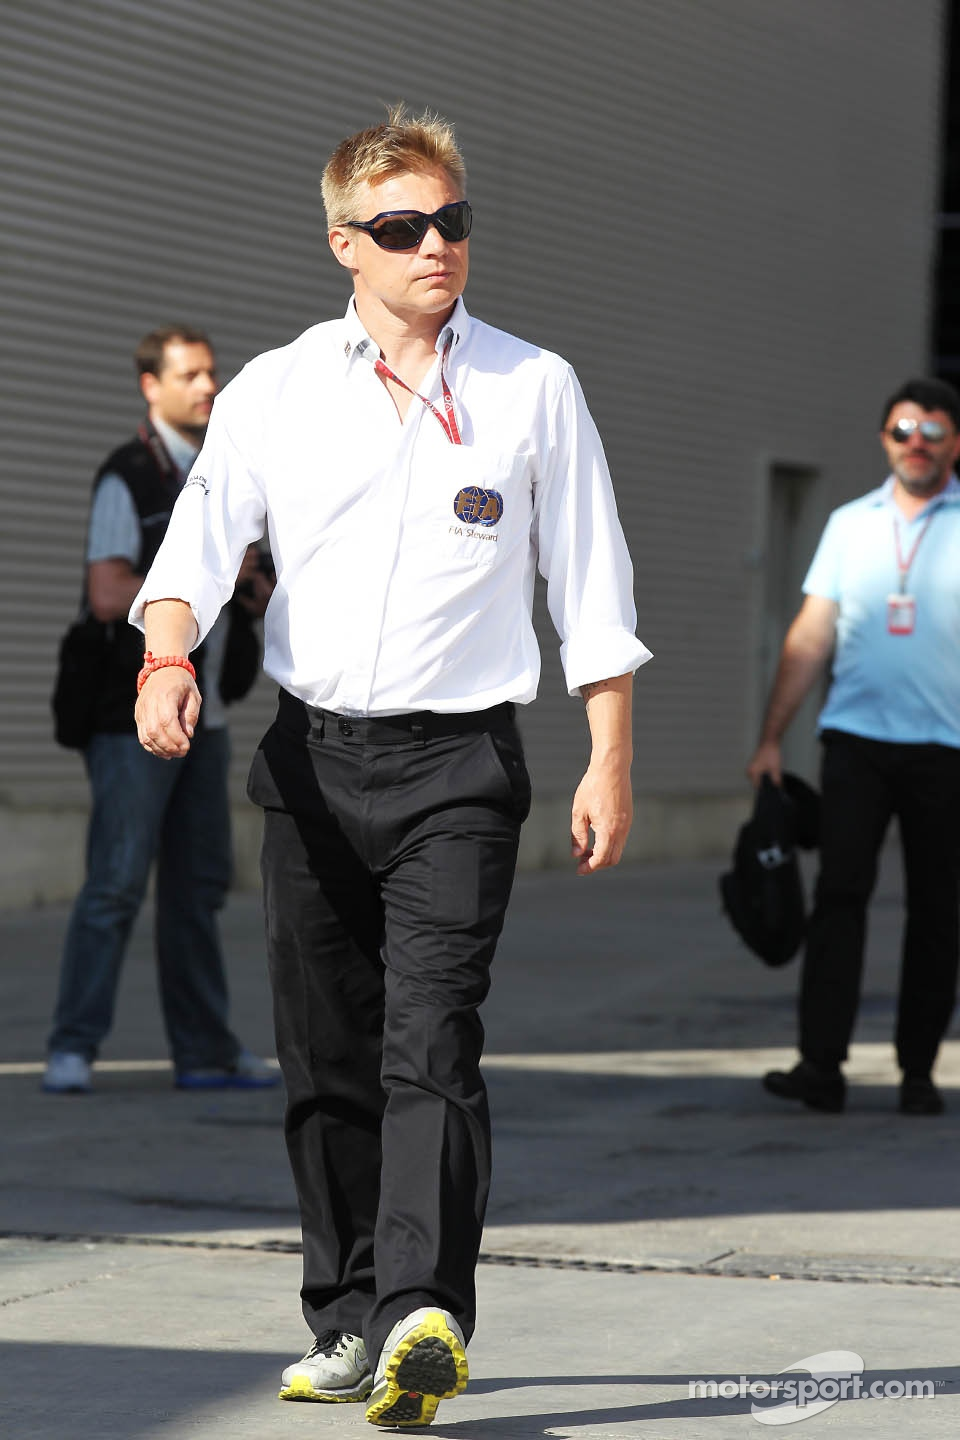 Mika Salo, FIA Steward